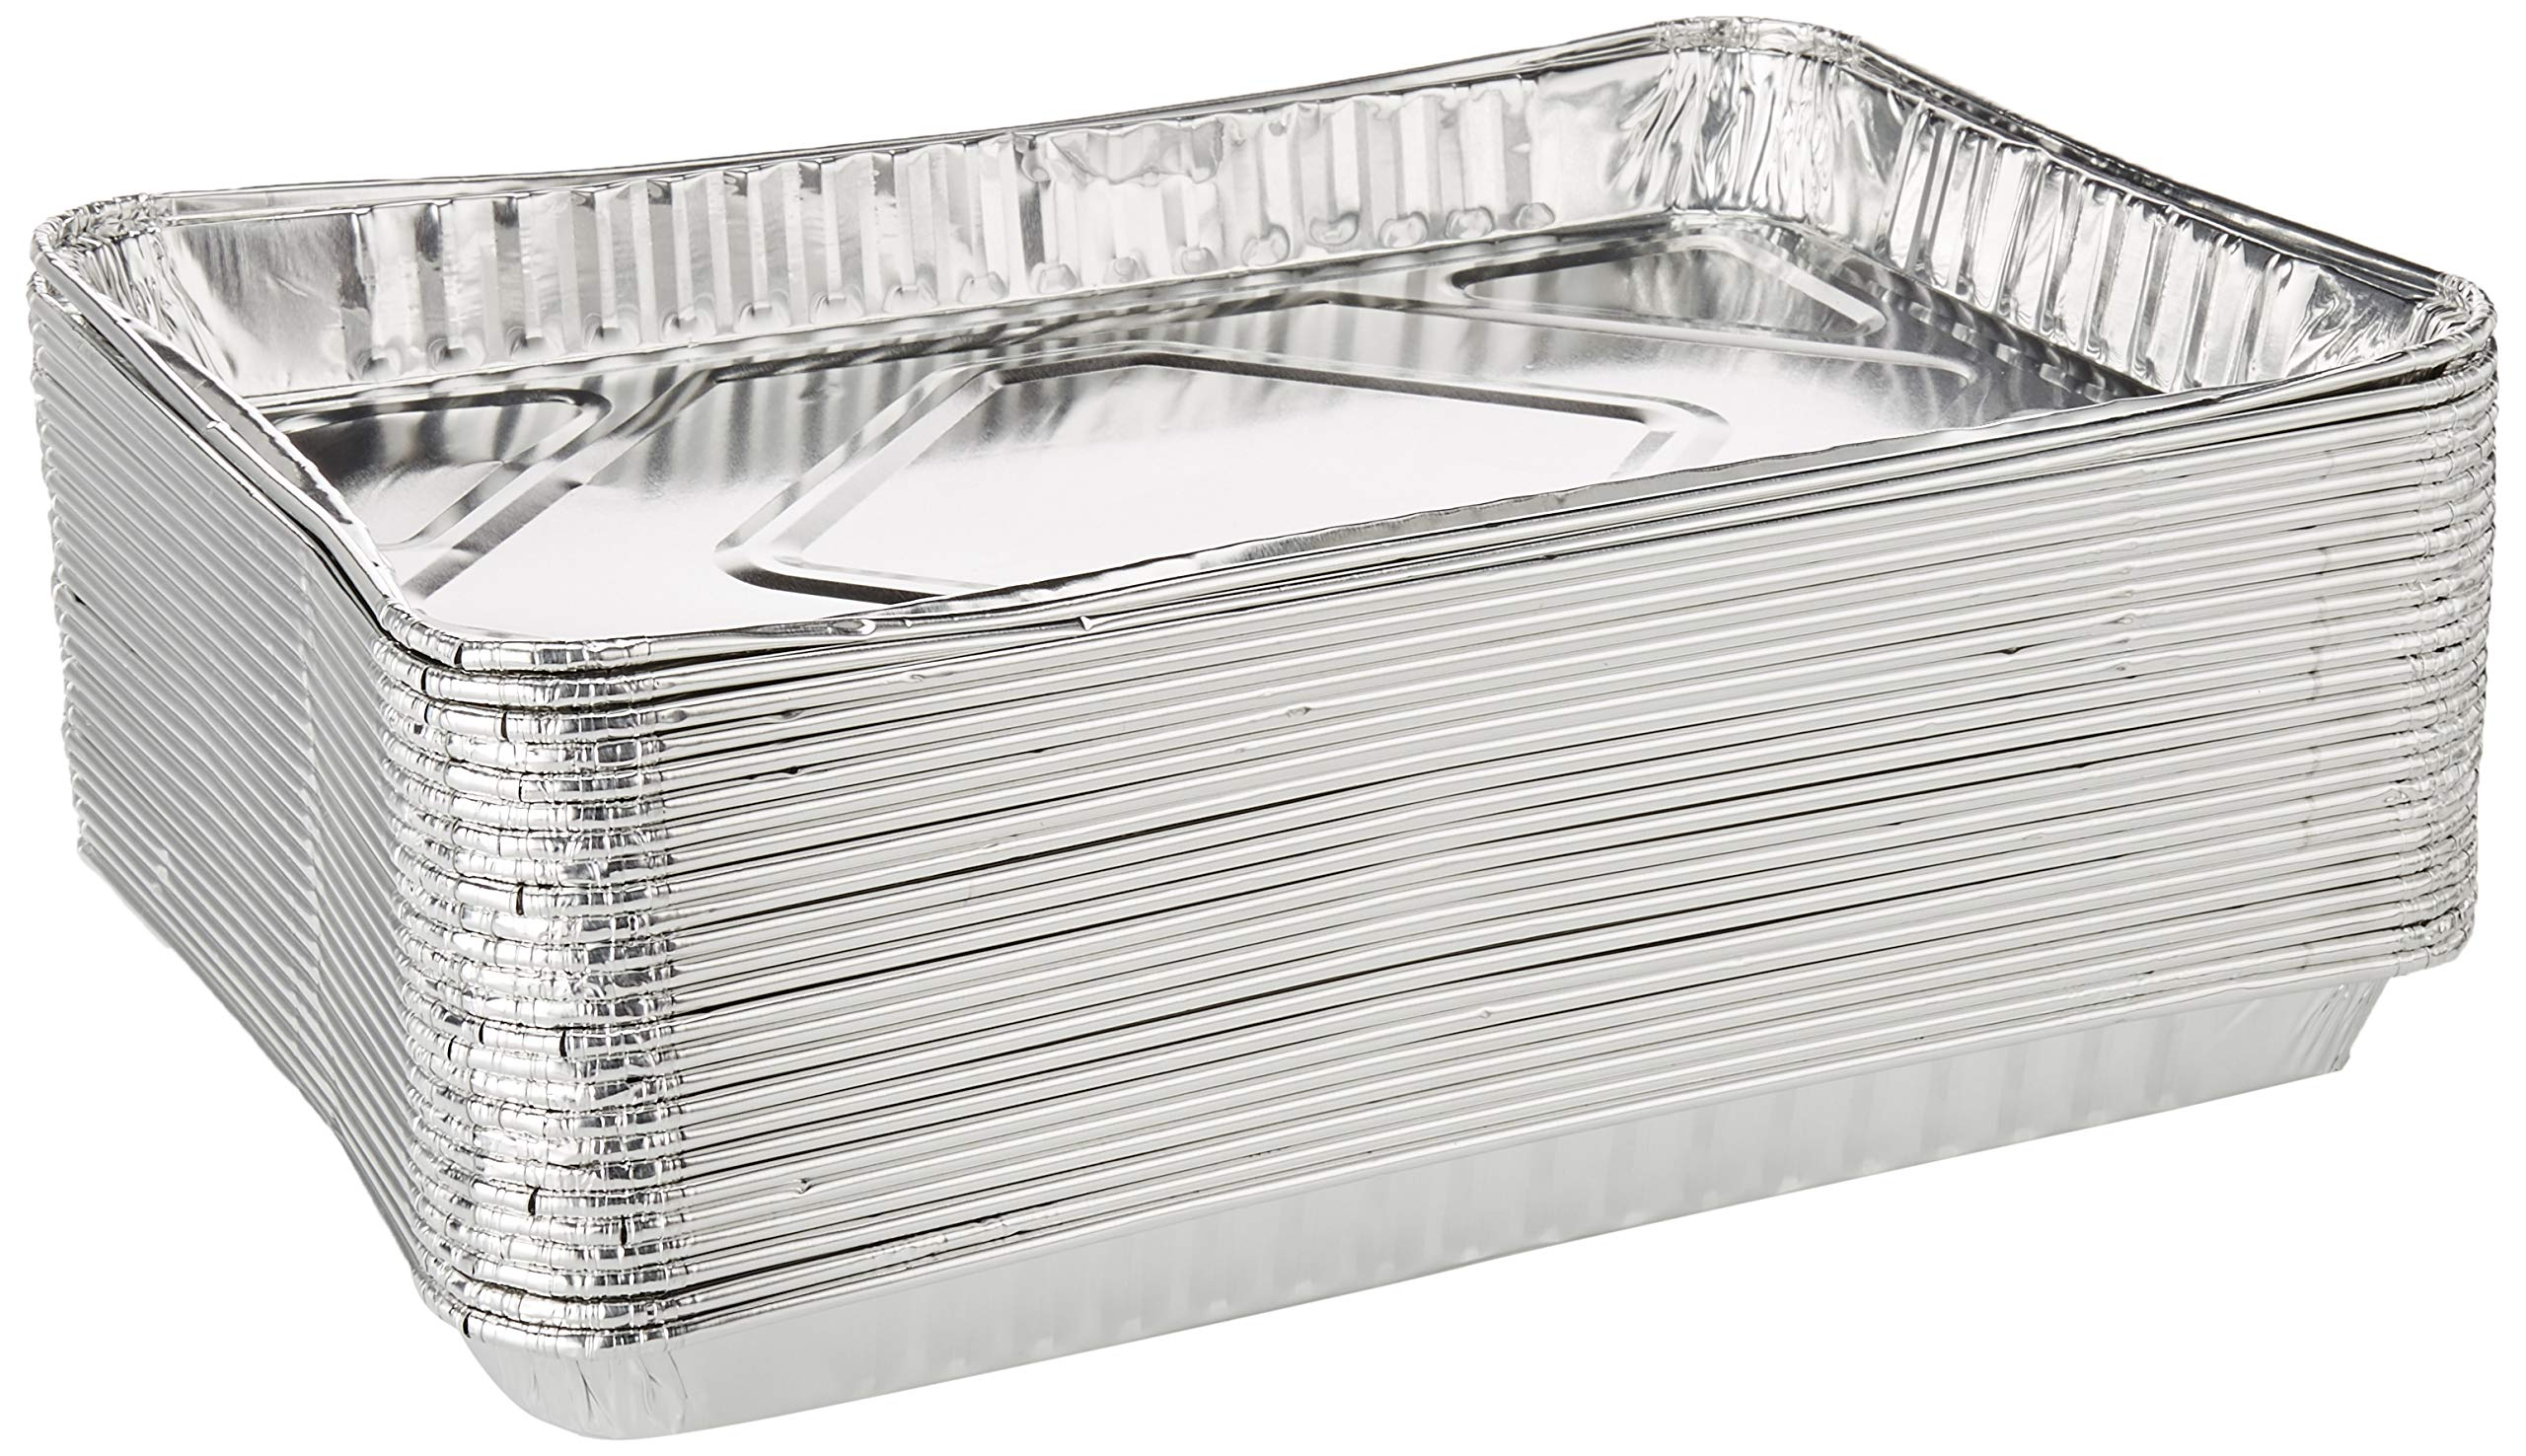 Pack of 25 1/4-Size (Quarter) Sheet Cake Aluminum Foil Pan- Extra Sturdy and Durable - Great for Bake Sales, Events and Transporting Food - 12-3/4'' x8-3/4'' x 1-1/4''